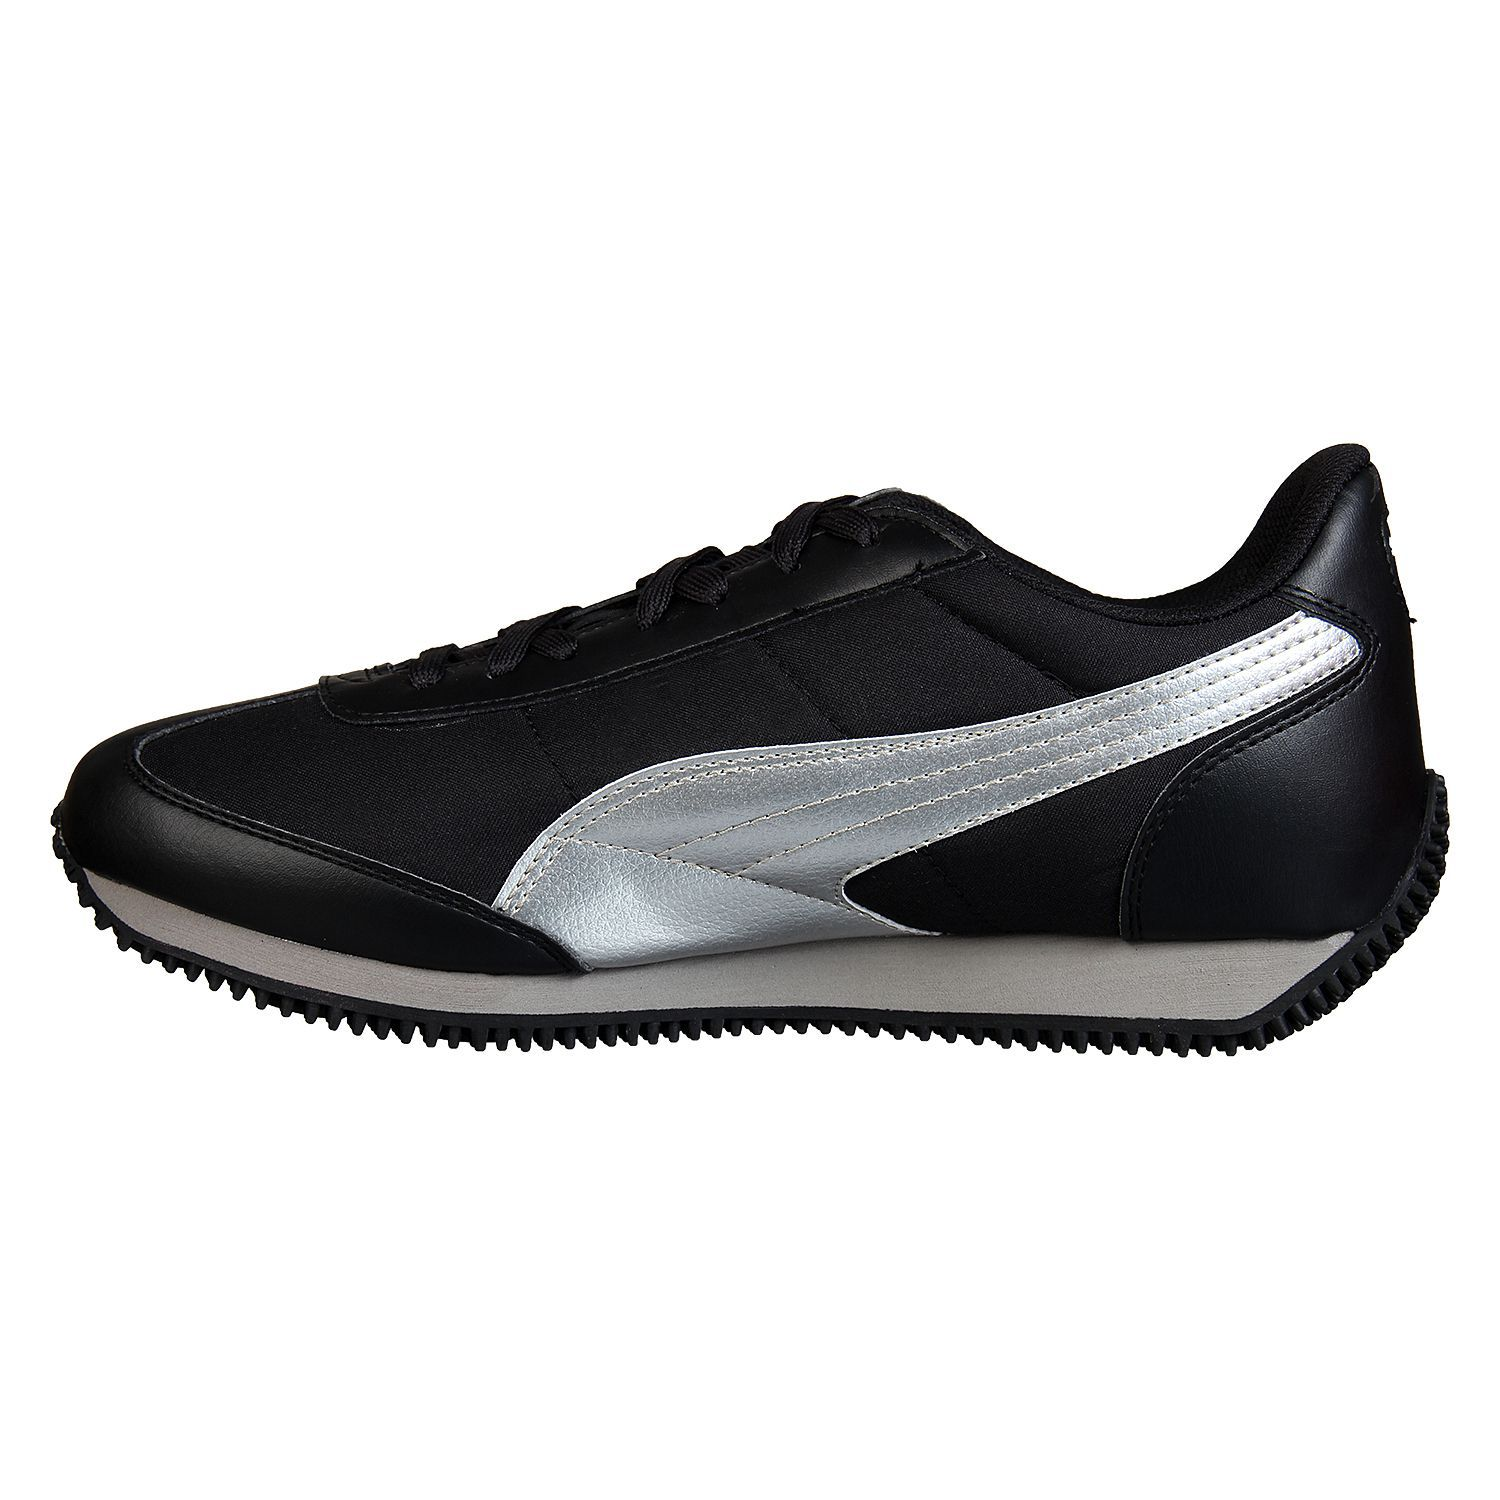 dd0e6a578da4fc Puma Speeder Tetron II Ind. Black Running Shoes - Buy Puma Speeder ...